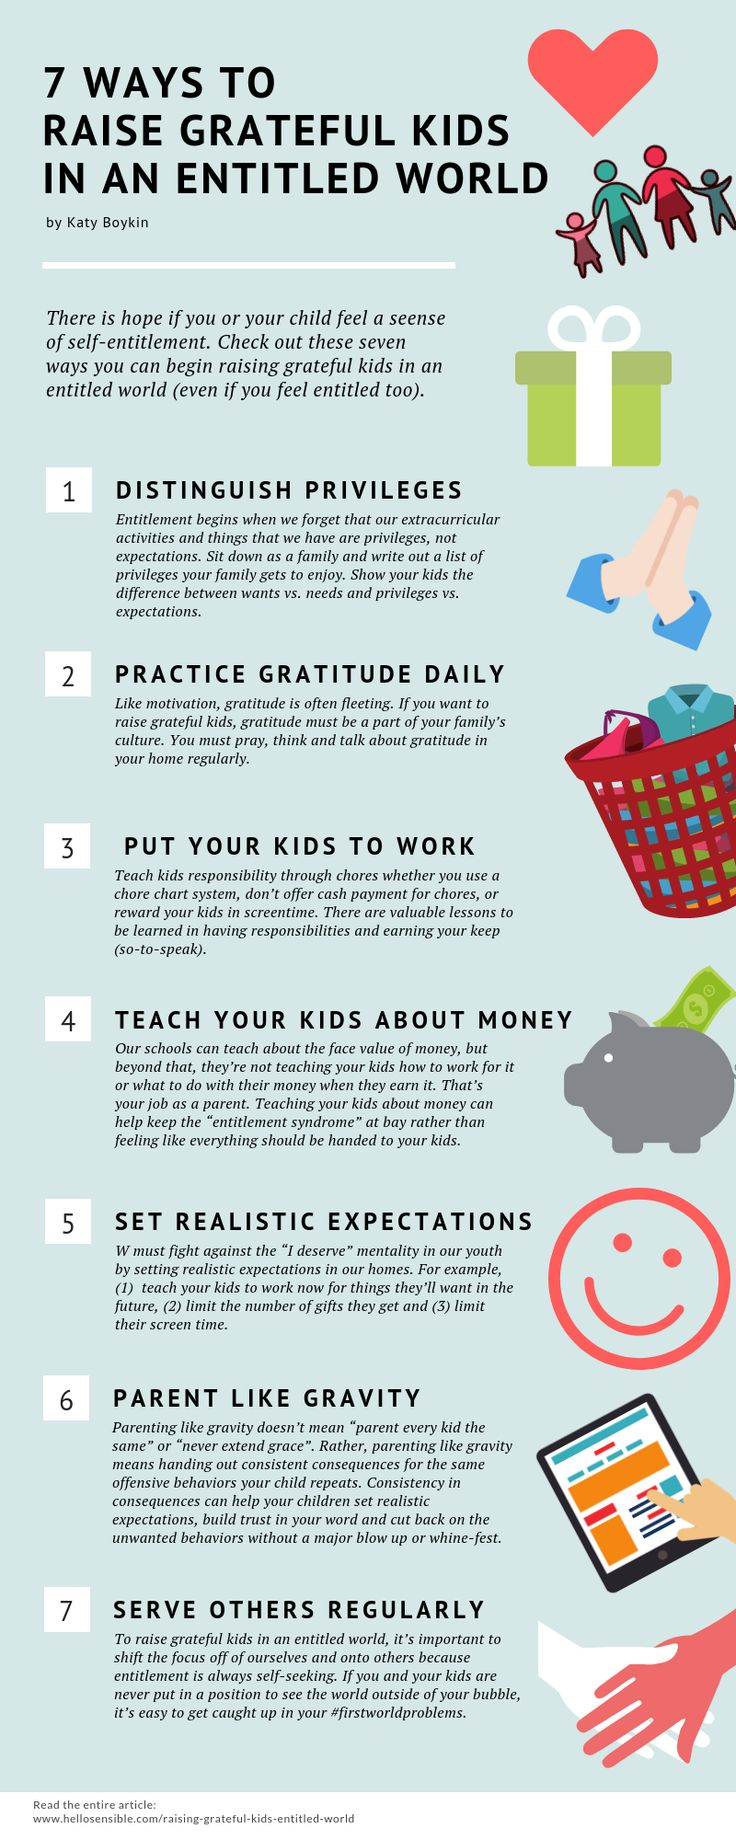 7 Ways to Raise Grateful Kids in an Entitled World